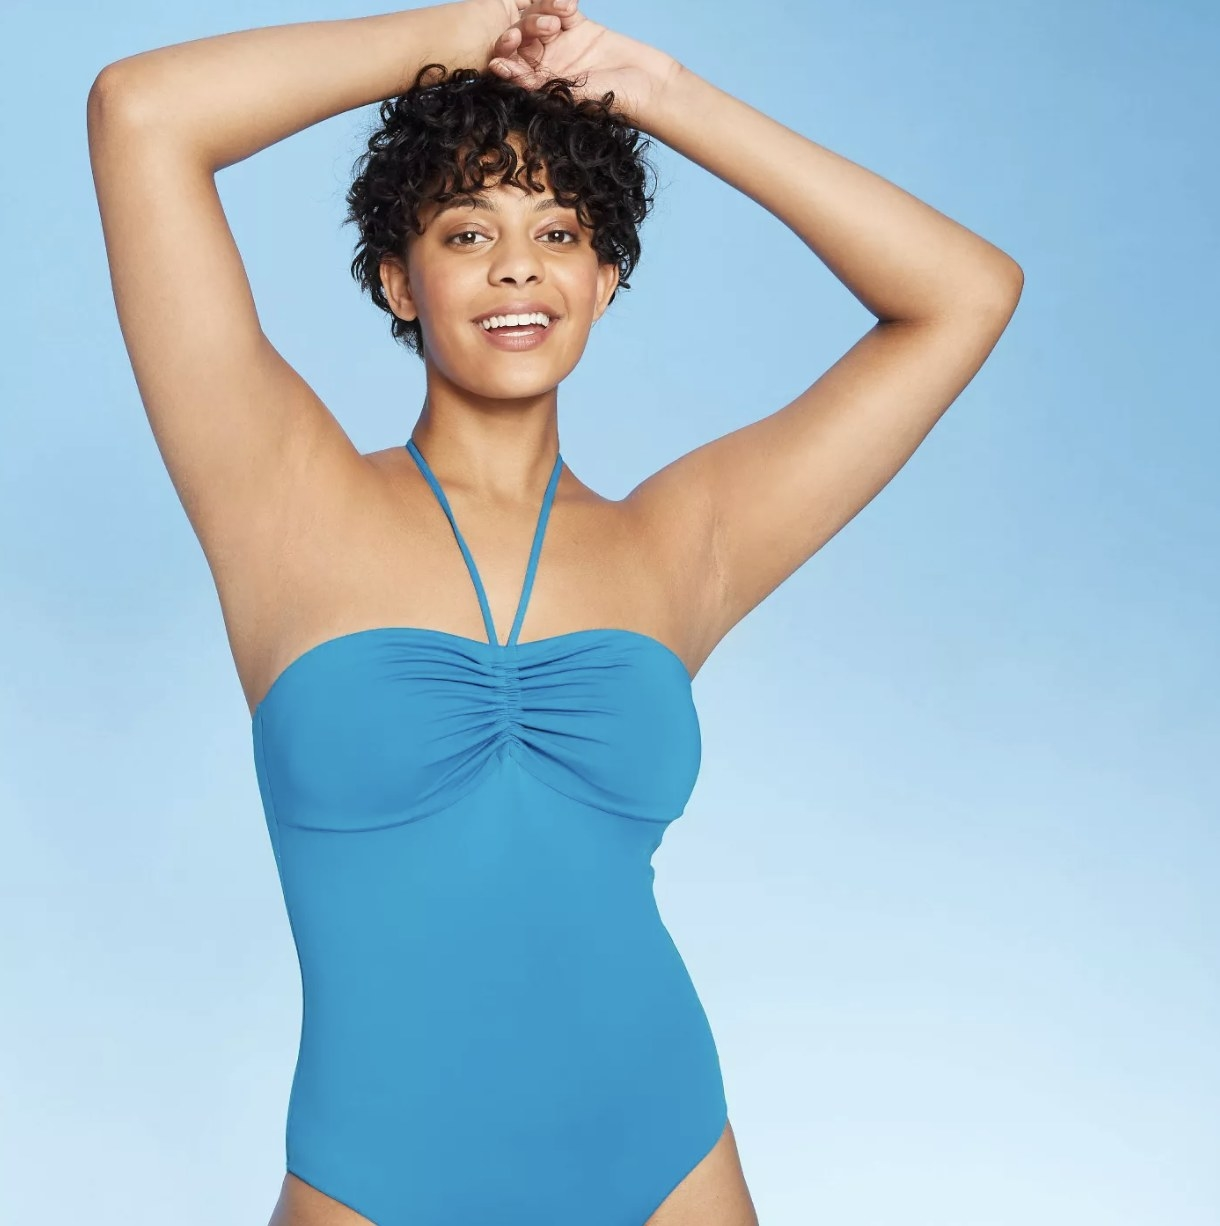 A model in the blue one piece